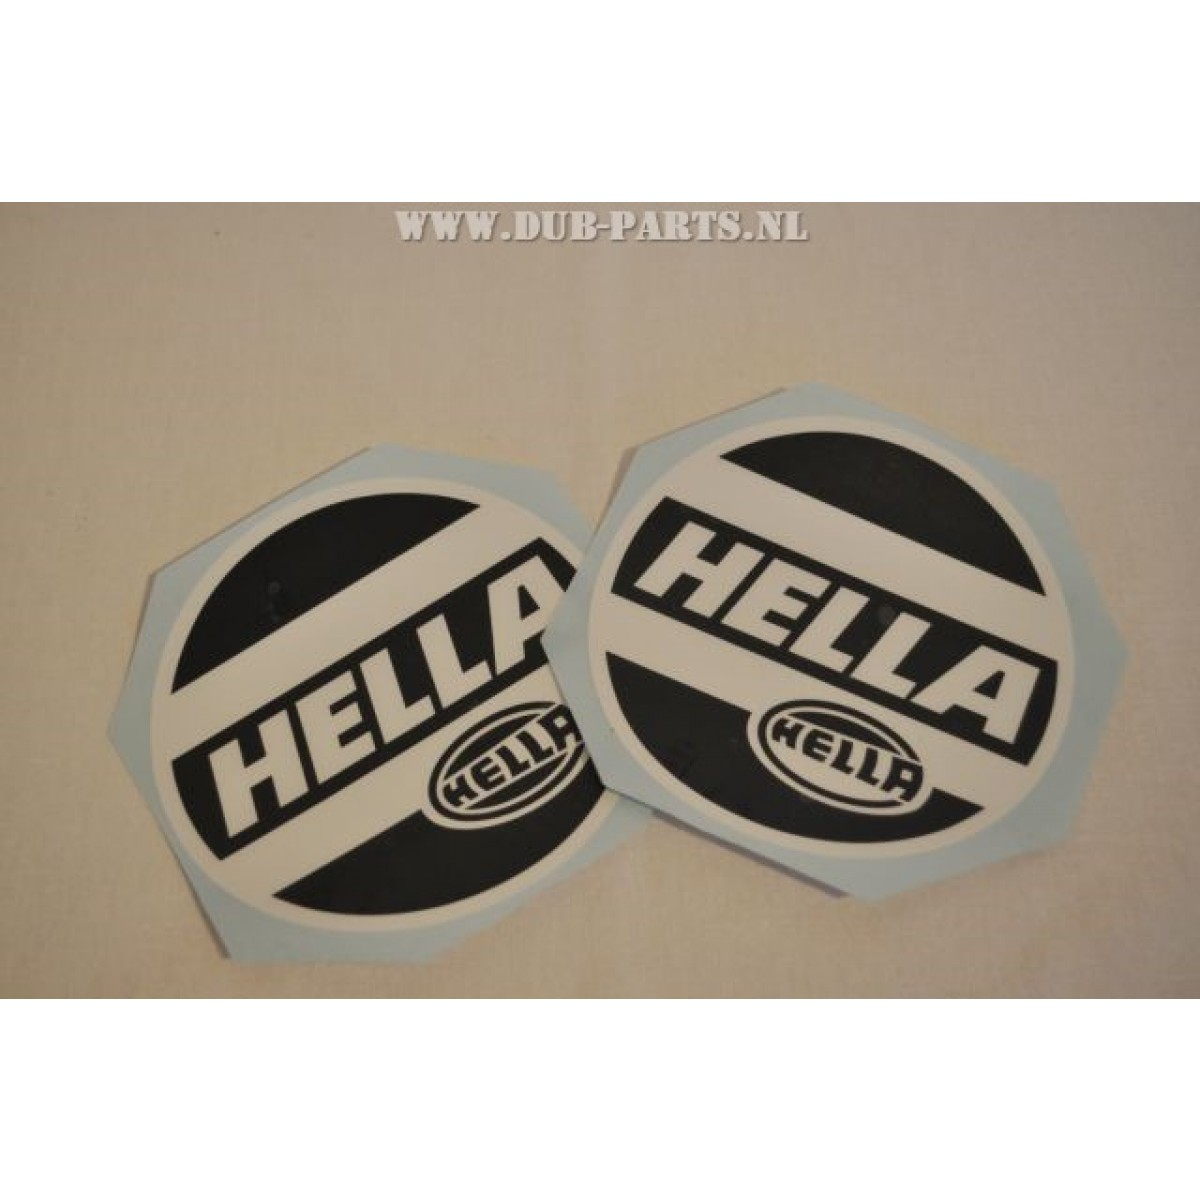 Hella Shop Hella Fog High Beam Headlight Stickers Dub Parts Online Shop